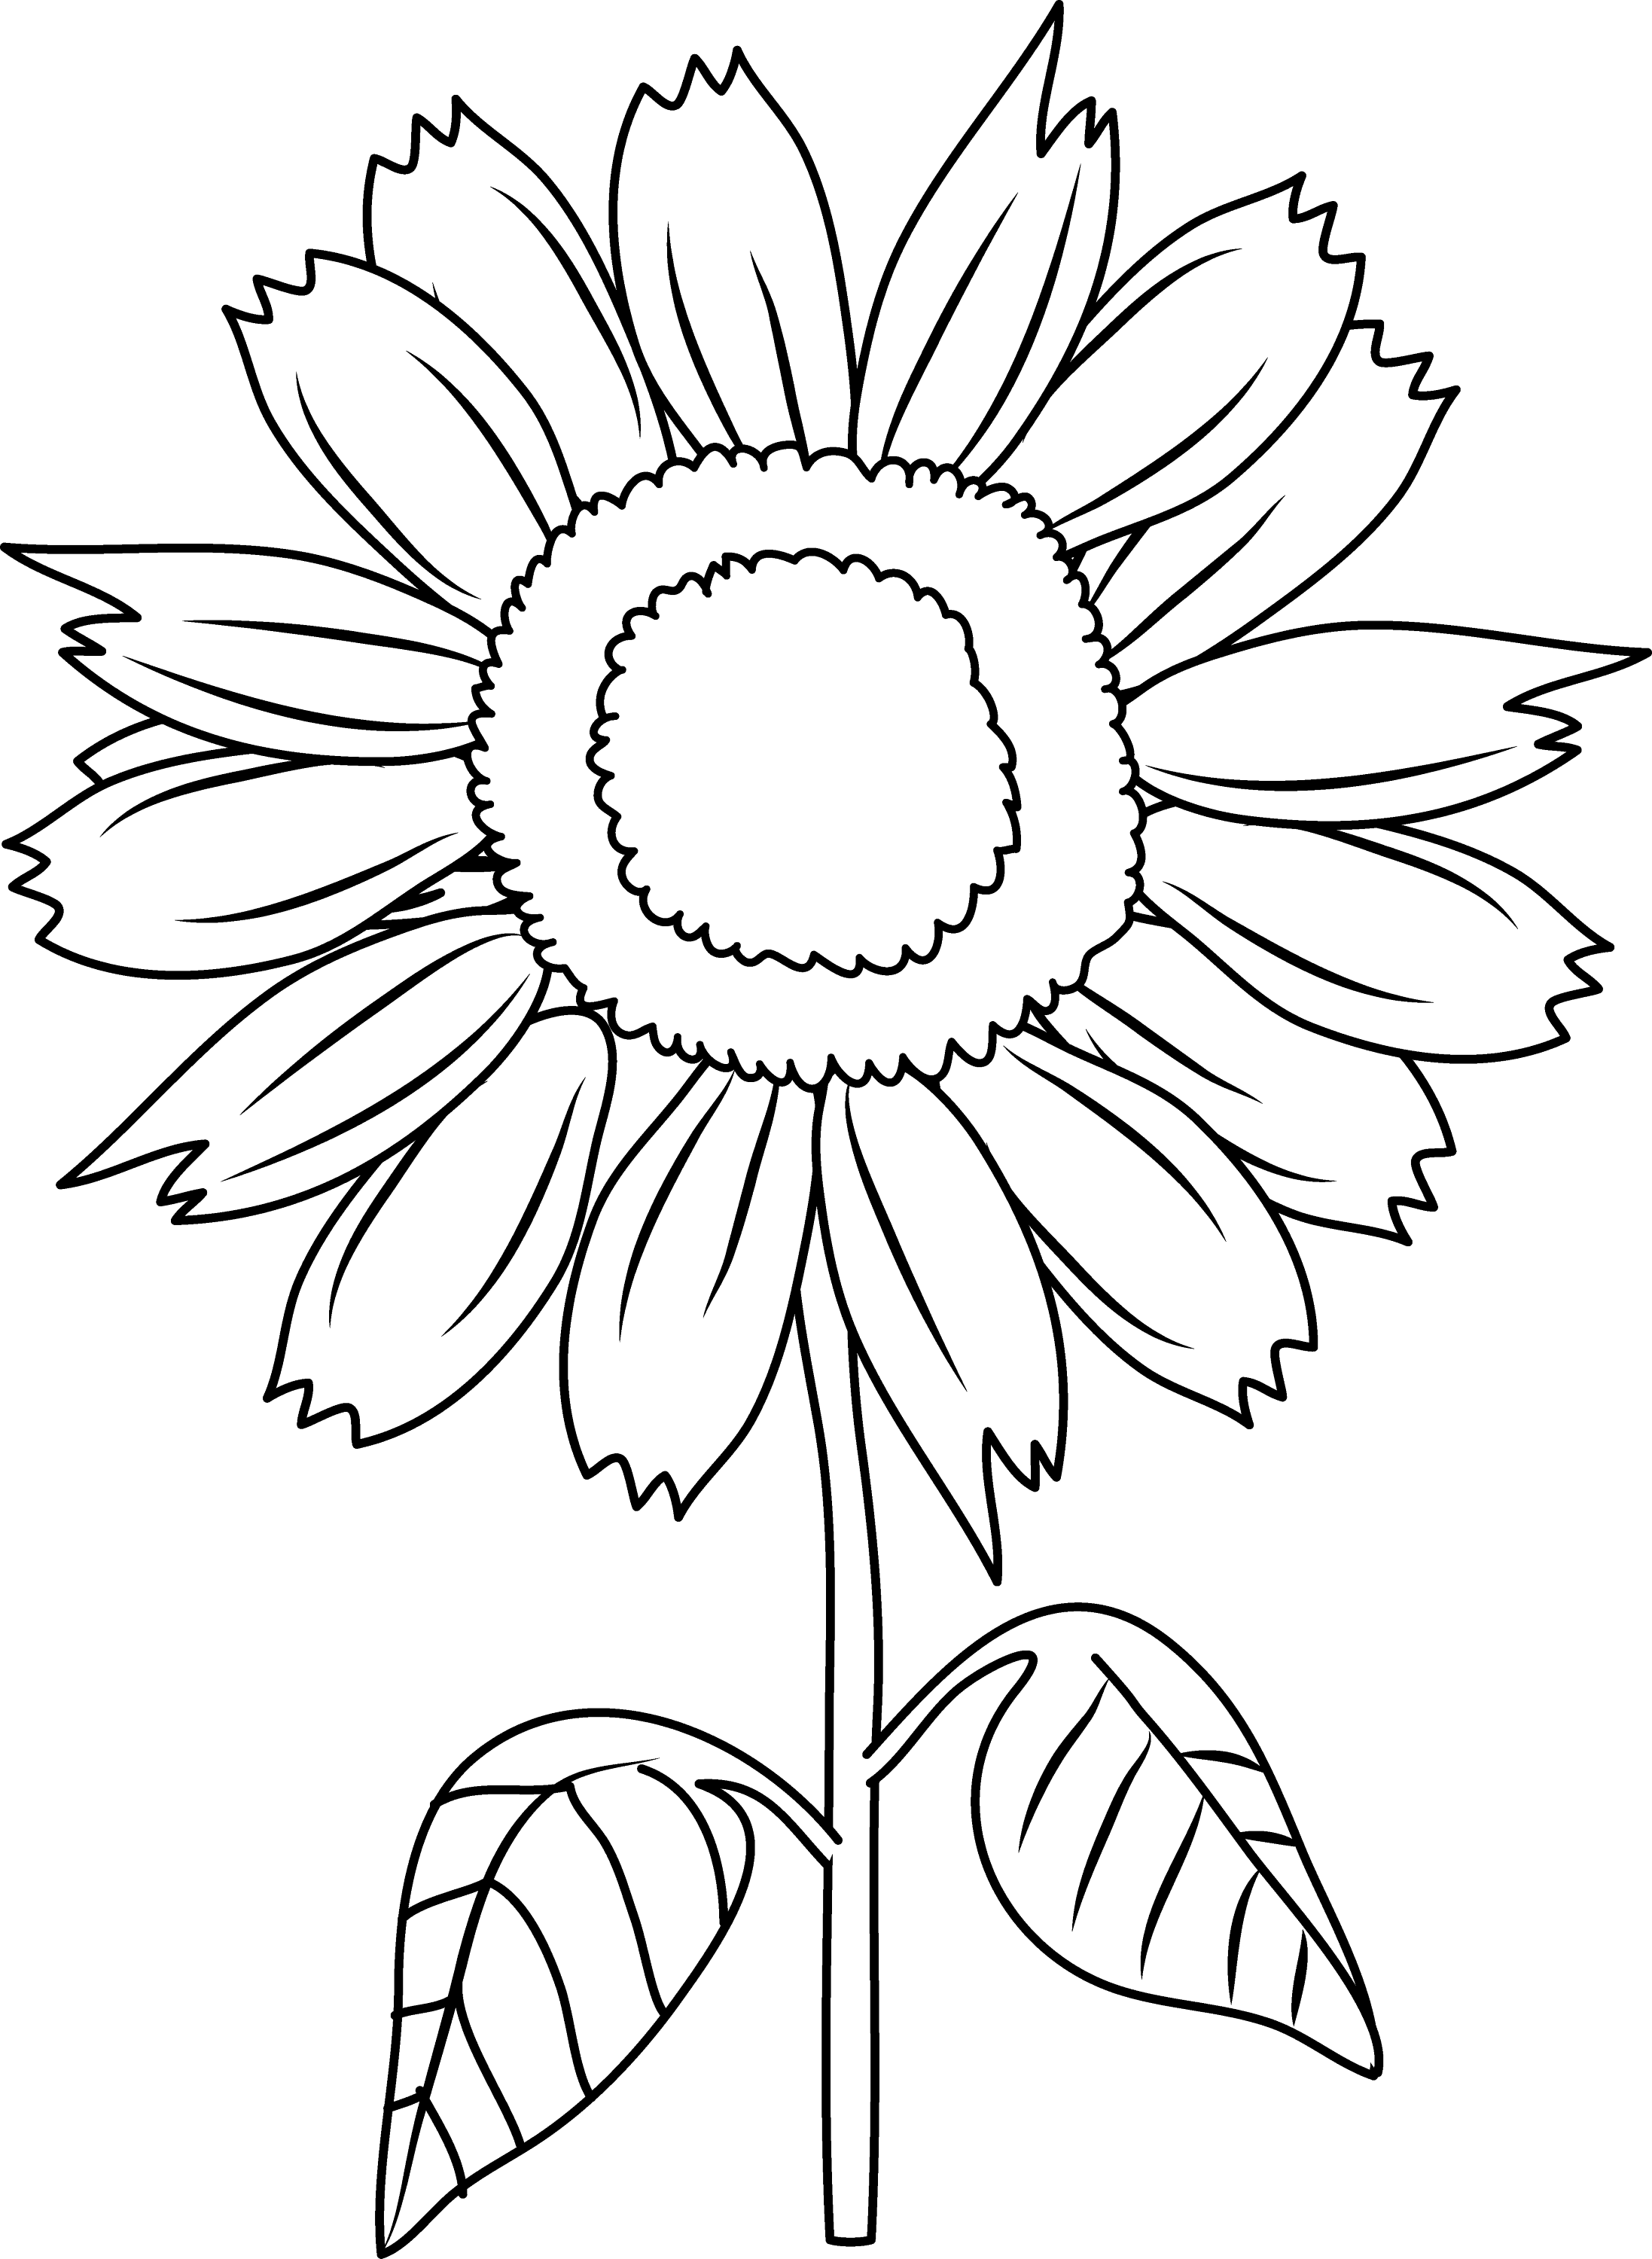 sunflower pictures to colour in sunflower flower coloring pages hd png download kindpng colour pictures in sunflower to